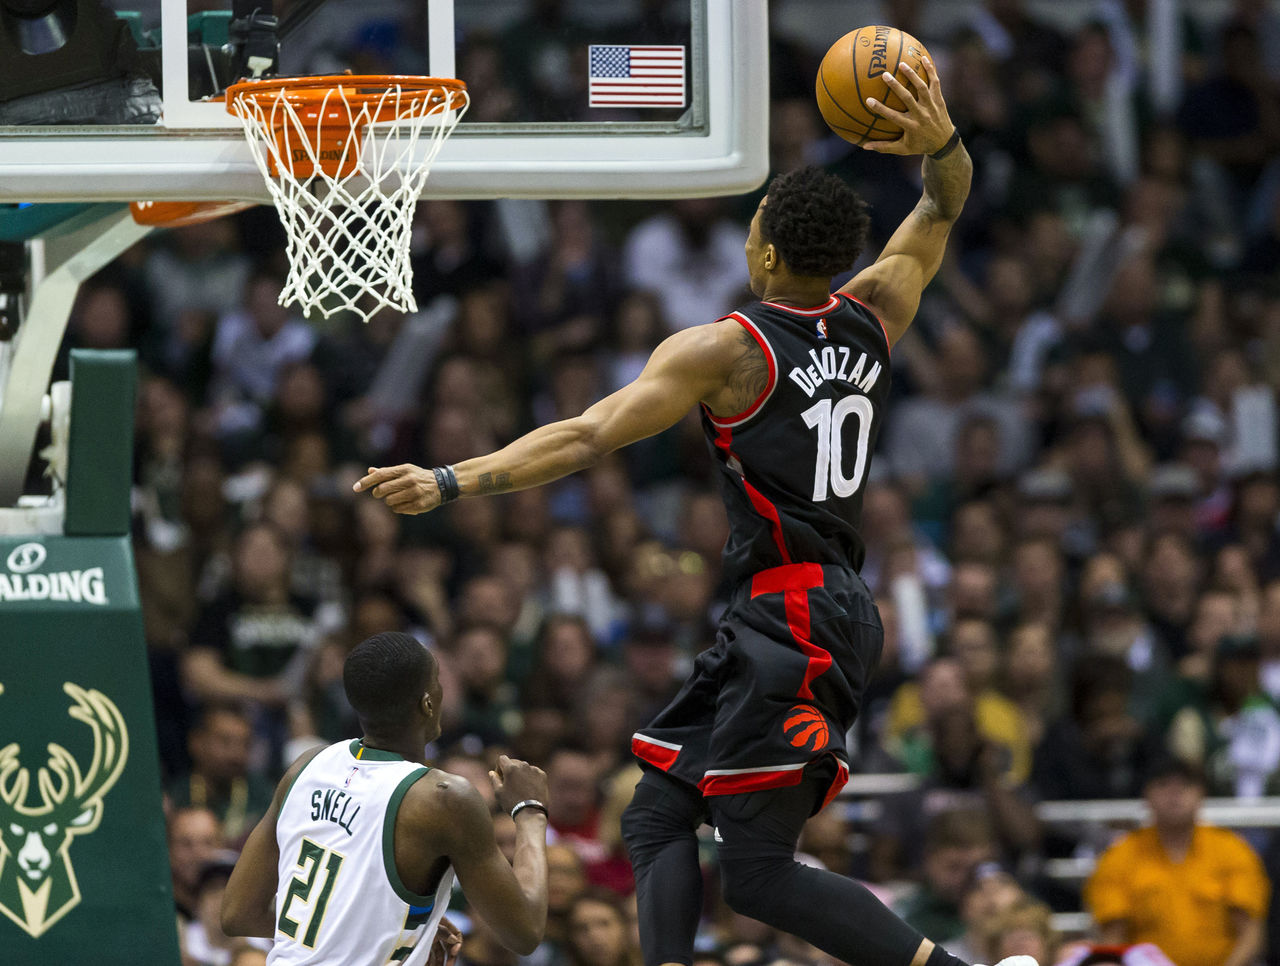 Cropped 2017 04 22t210142z 1469334312 nocid rtrmadp 3 nba playoffs toronto raptors at milwaukee bucks